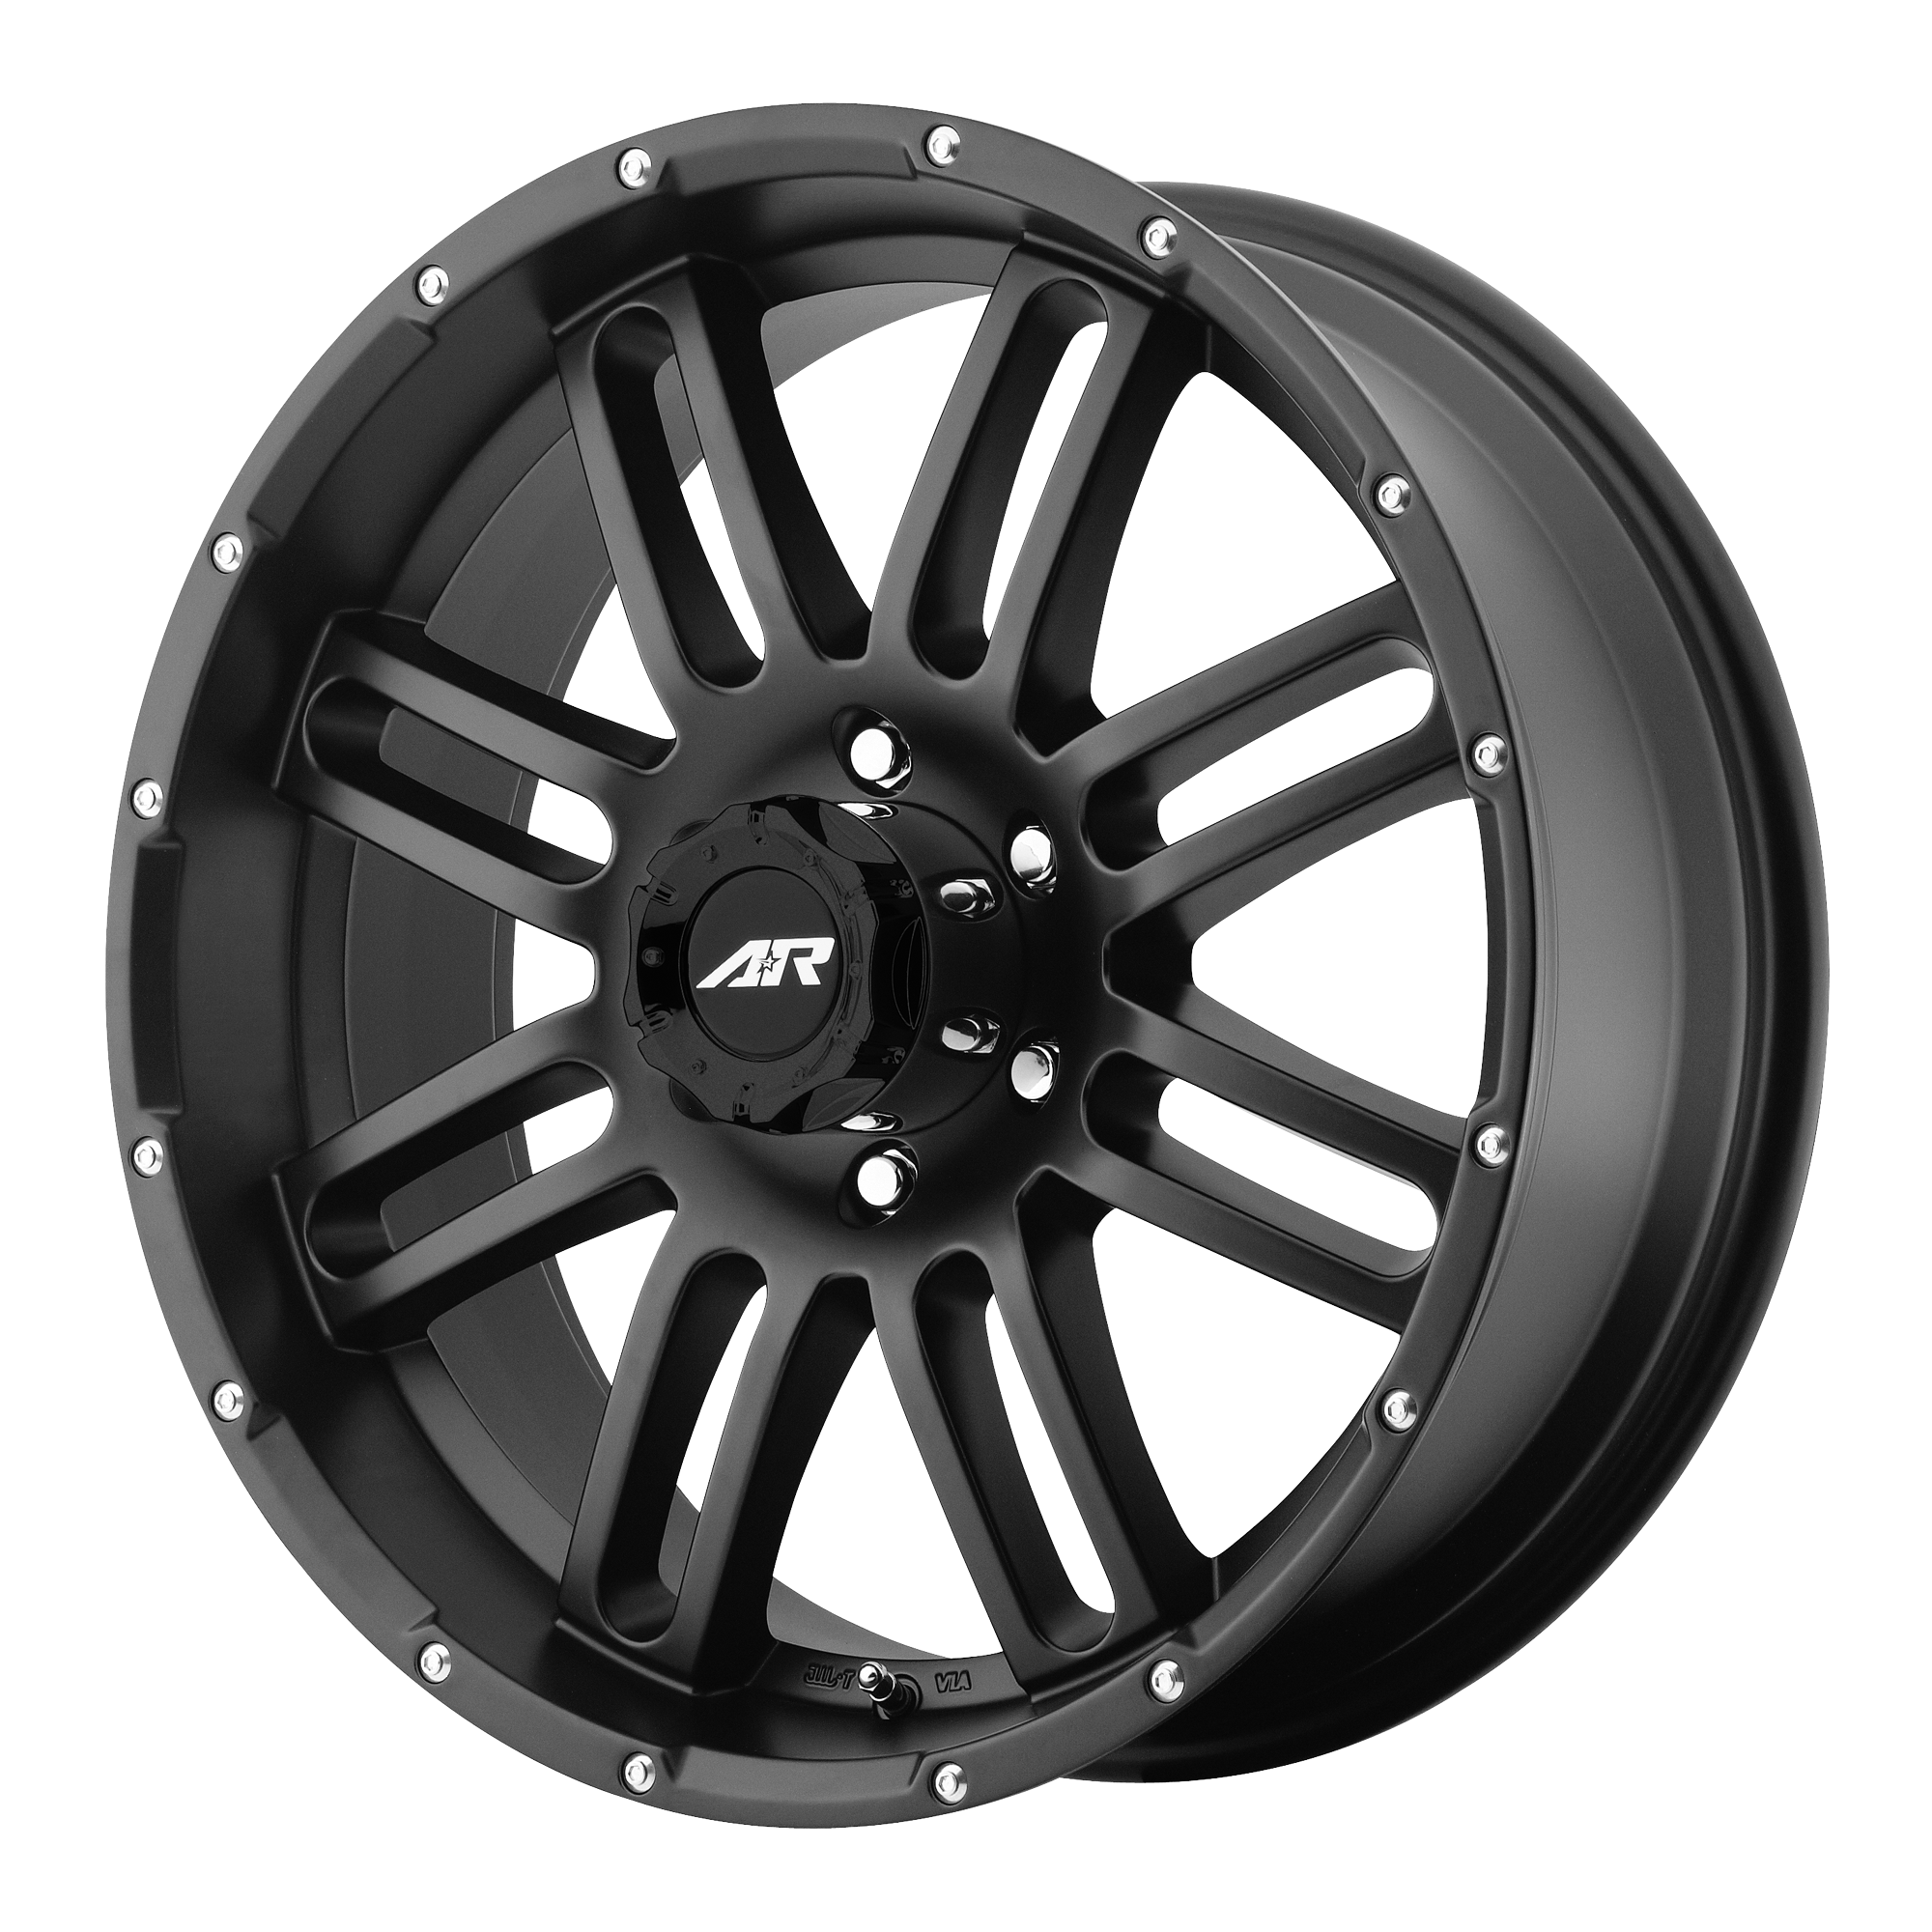 American Racing Wheels AR901 Black